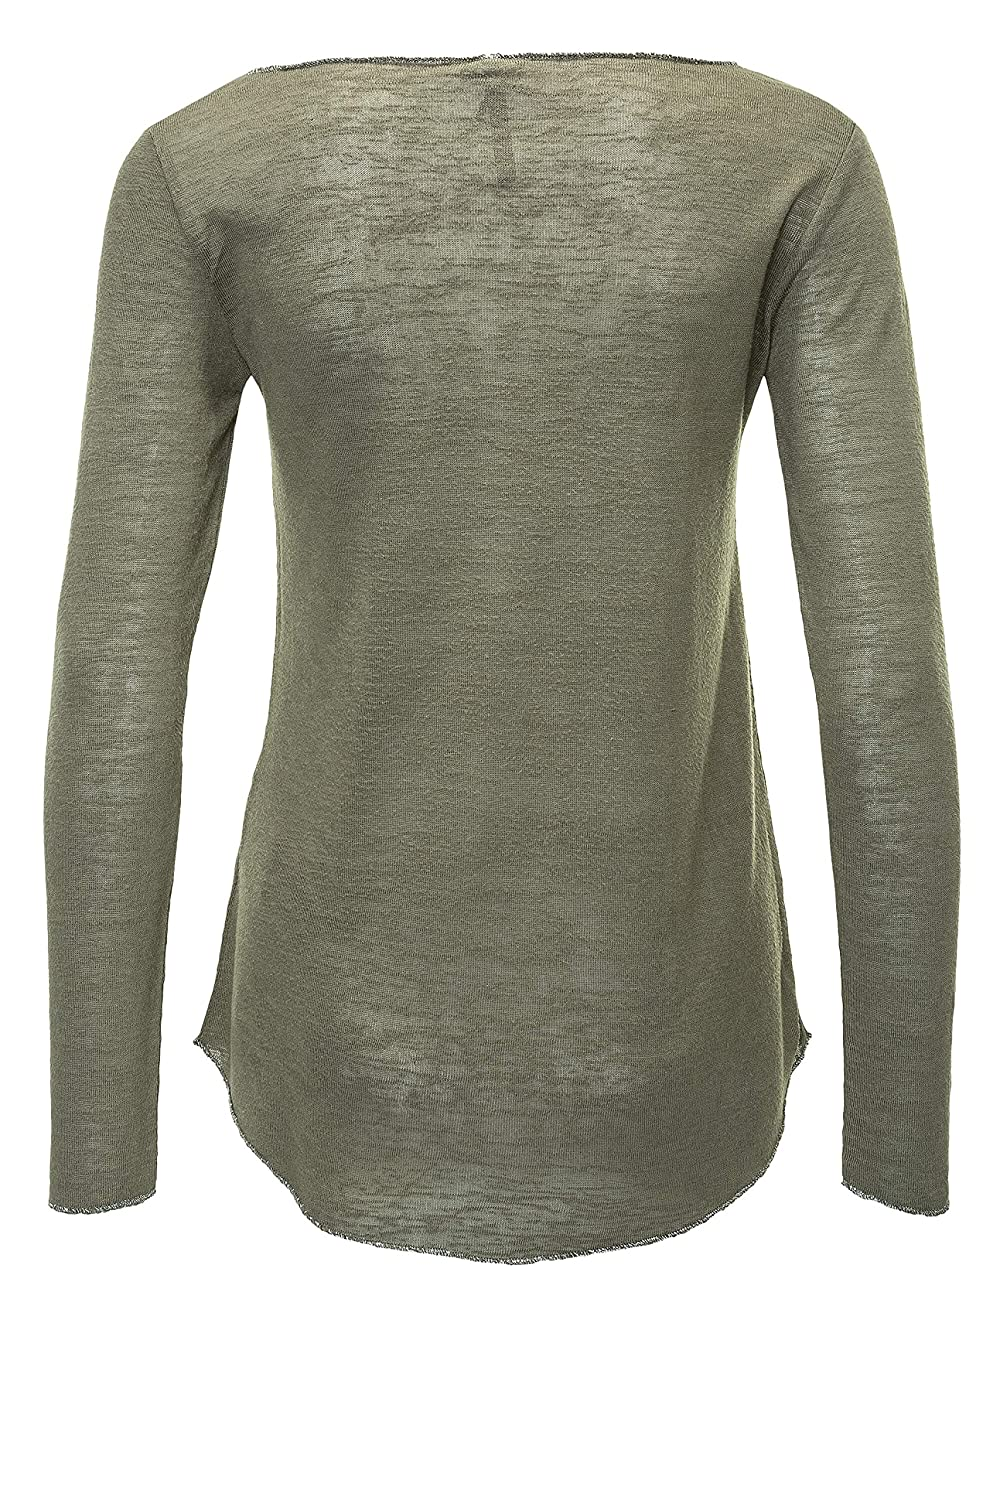 Key Largo Damen Langarmshirt Longsleeve O-Neck Casual: Amazon.de: Bekleidung